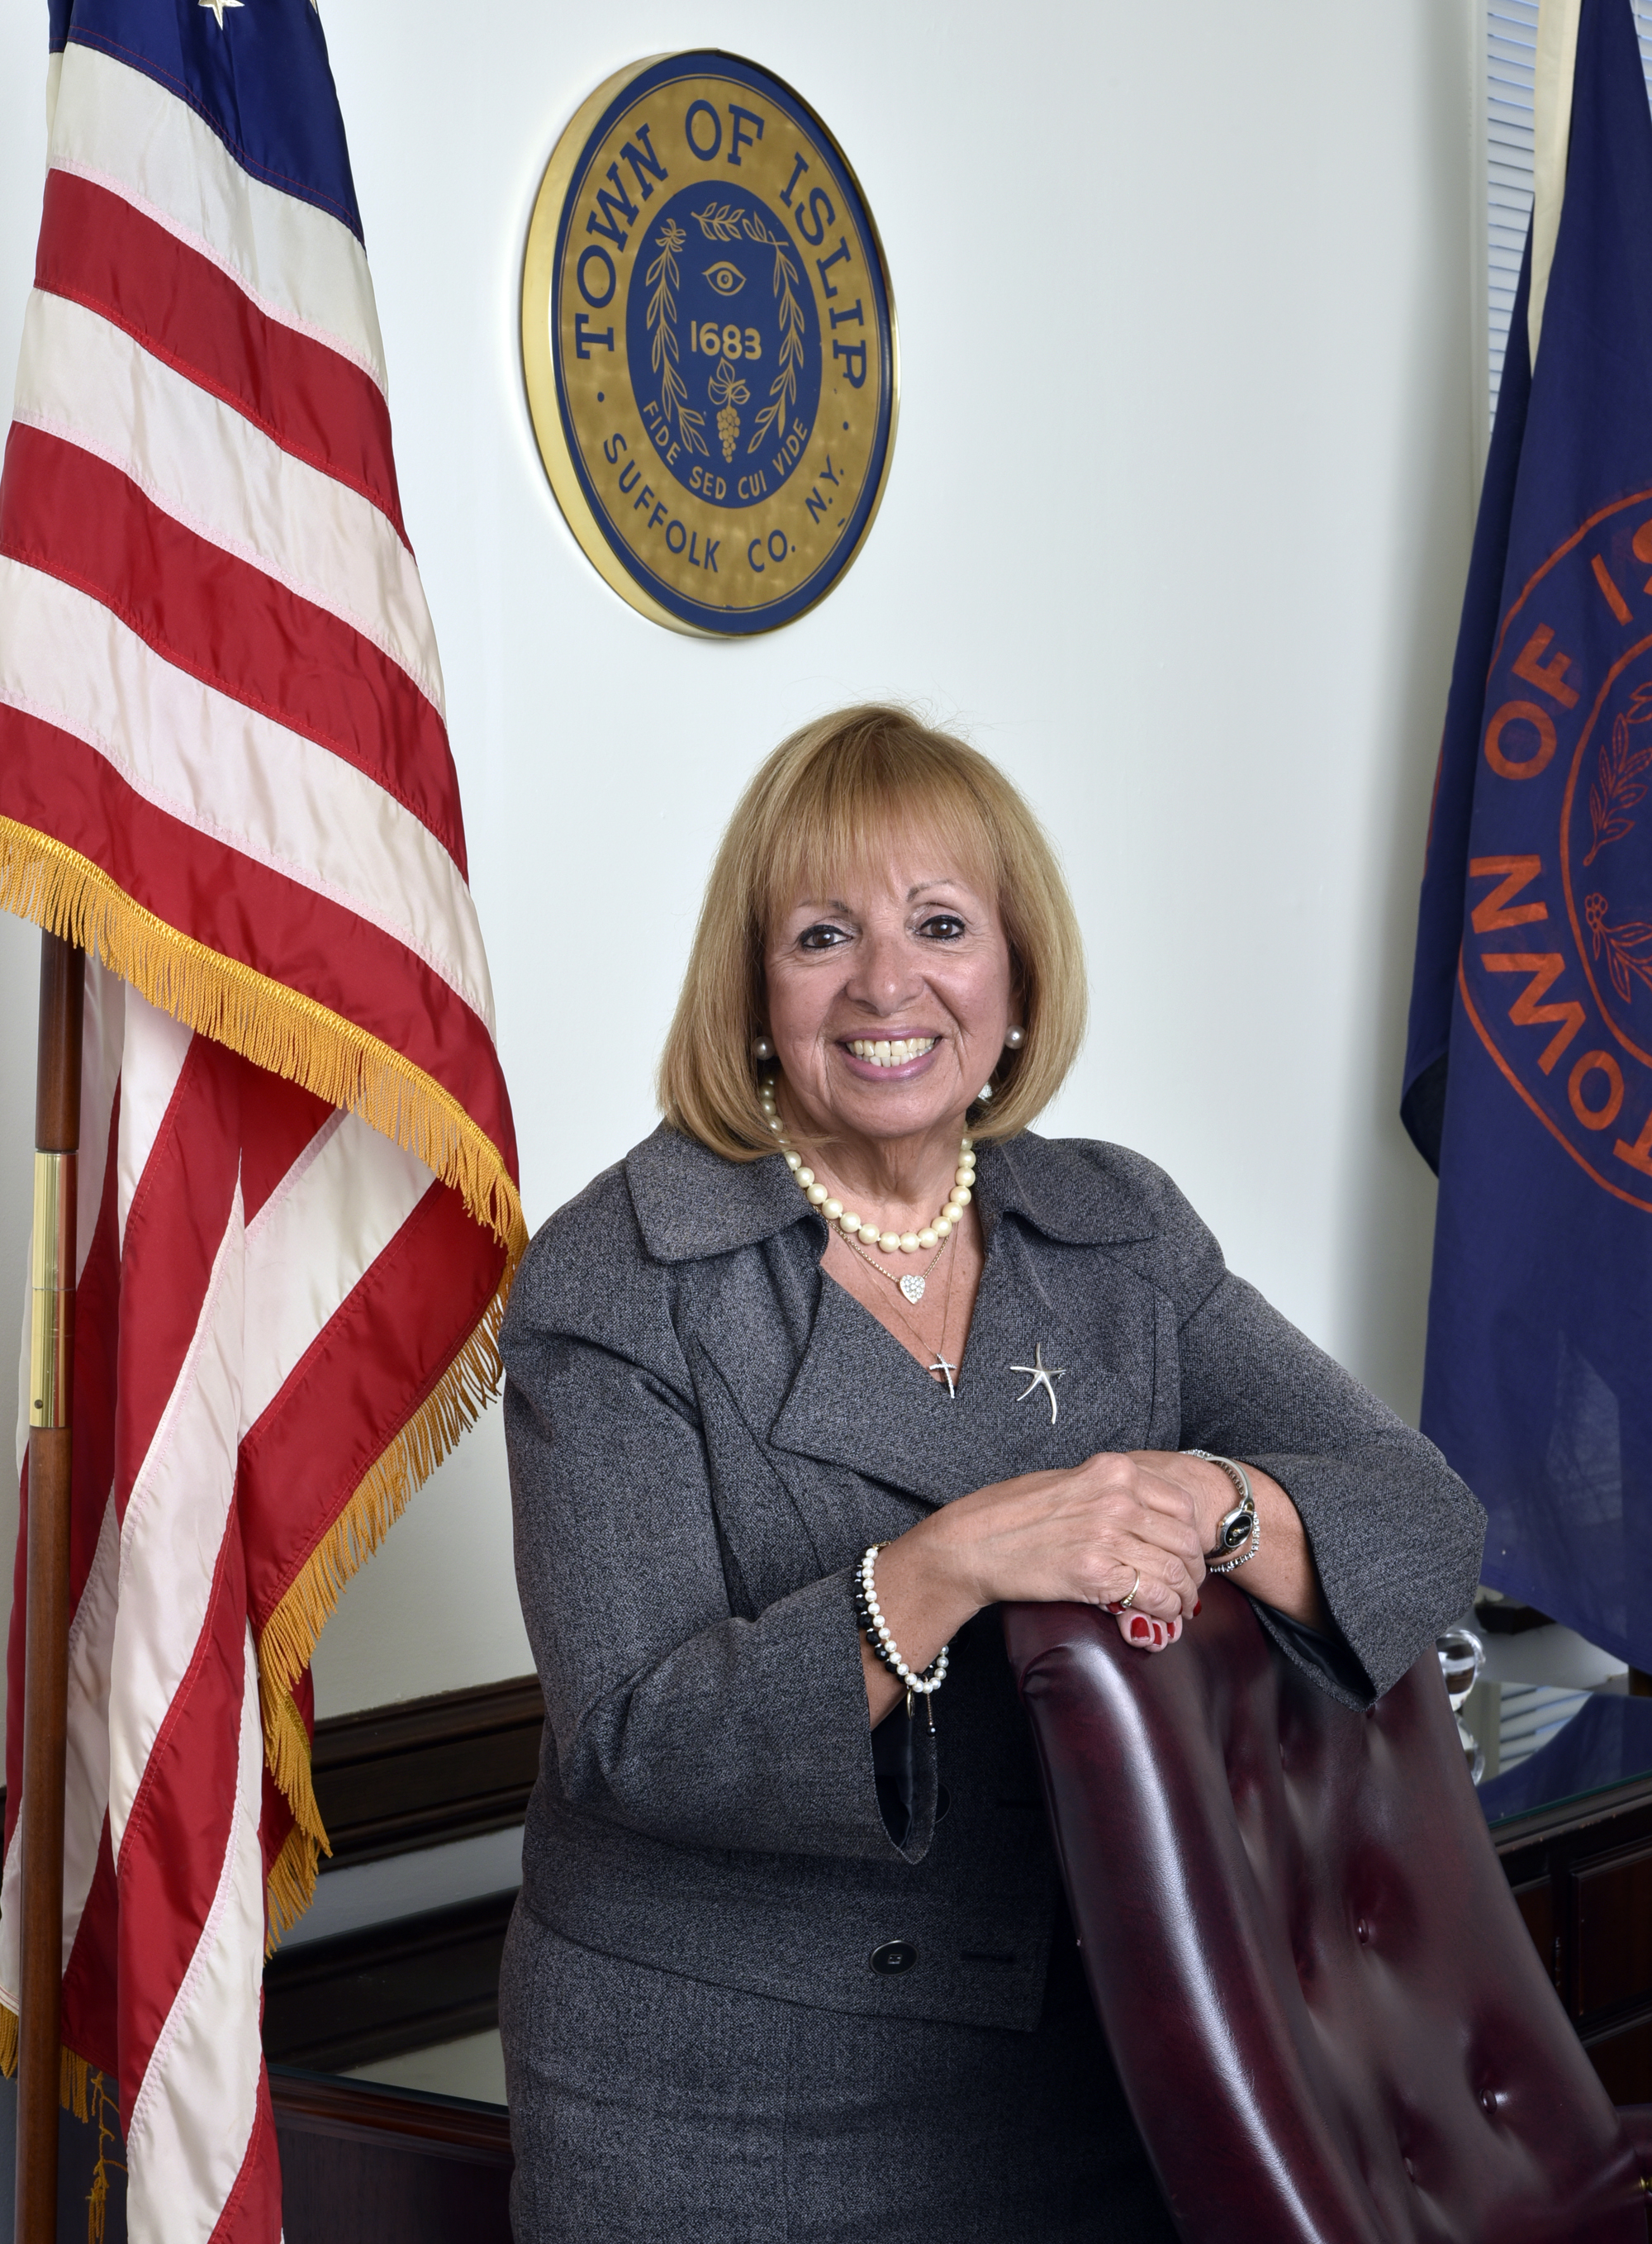 A picture of Supervisor Carpenter standing behind her desk in front of the Islip Town Seal, next to the American Flag